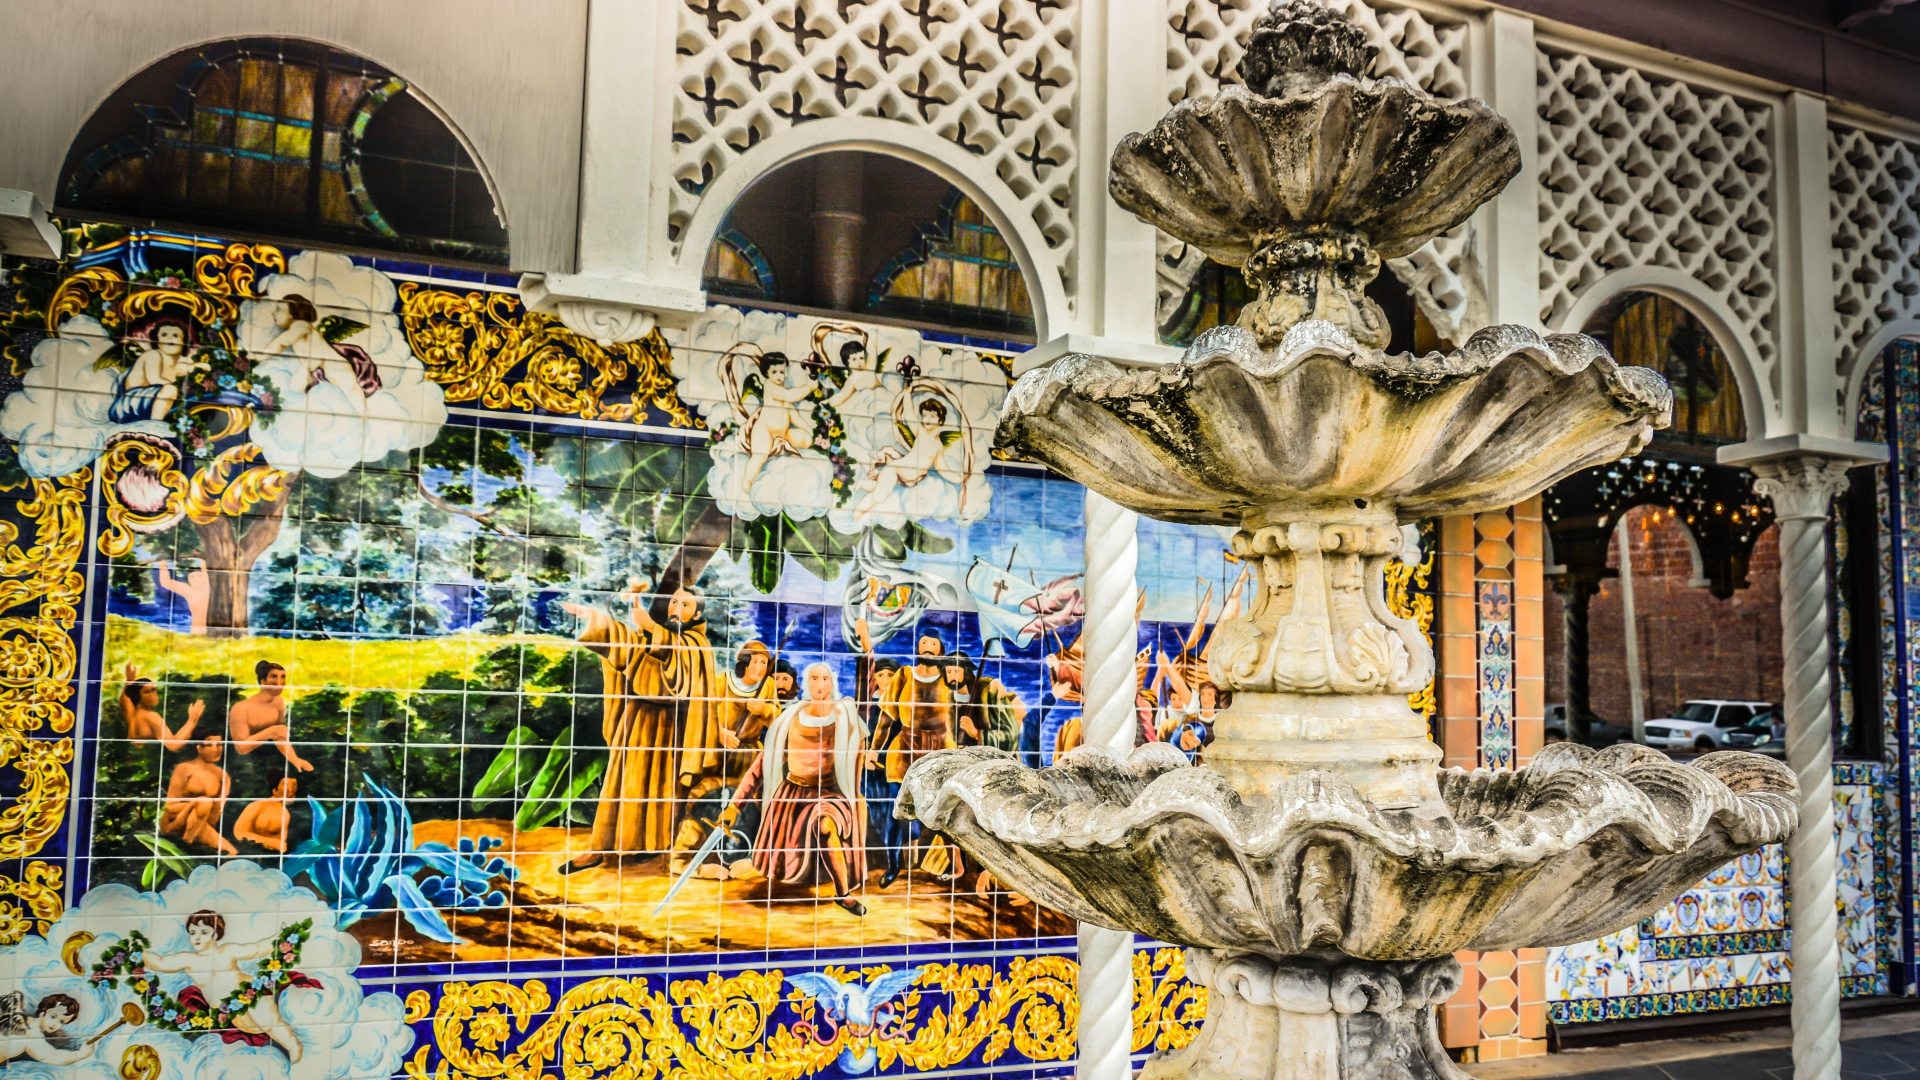 Details of Columbia Restaurant, known for its Spanish tile, fountain and ornate architecture. (Credit: Jennifer Wright/Alamy Stock Photo)